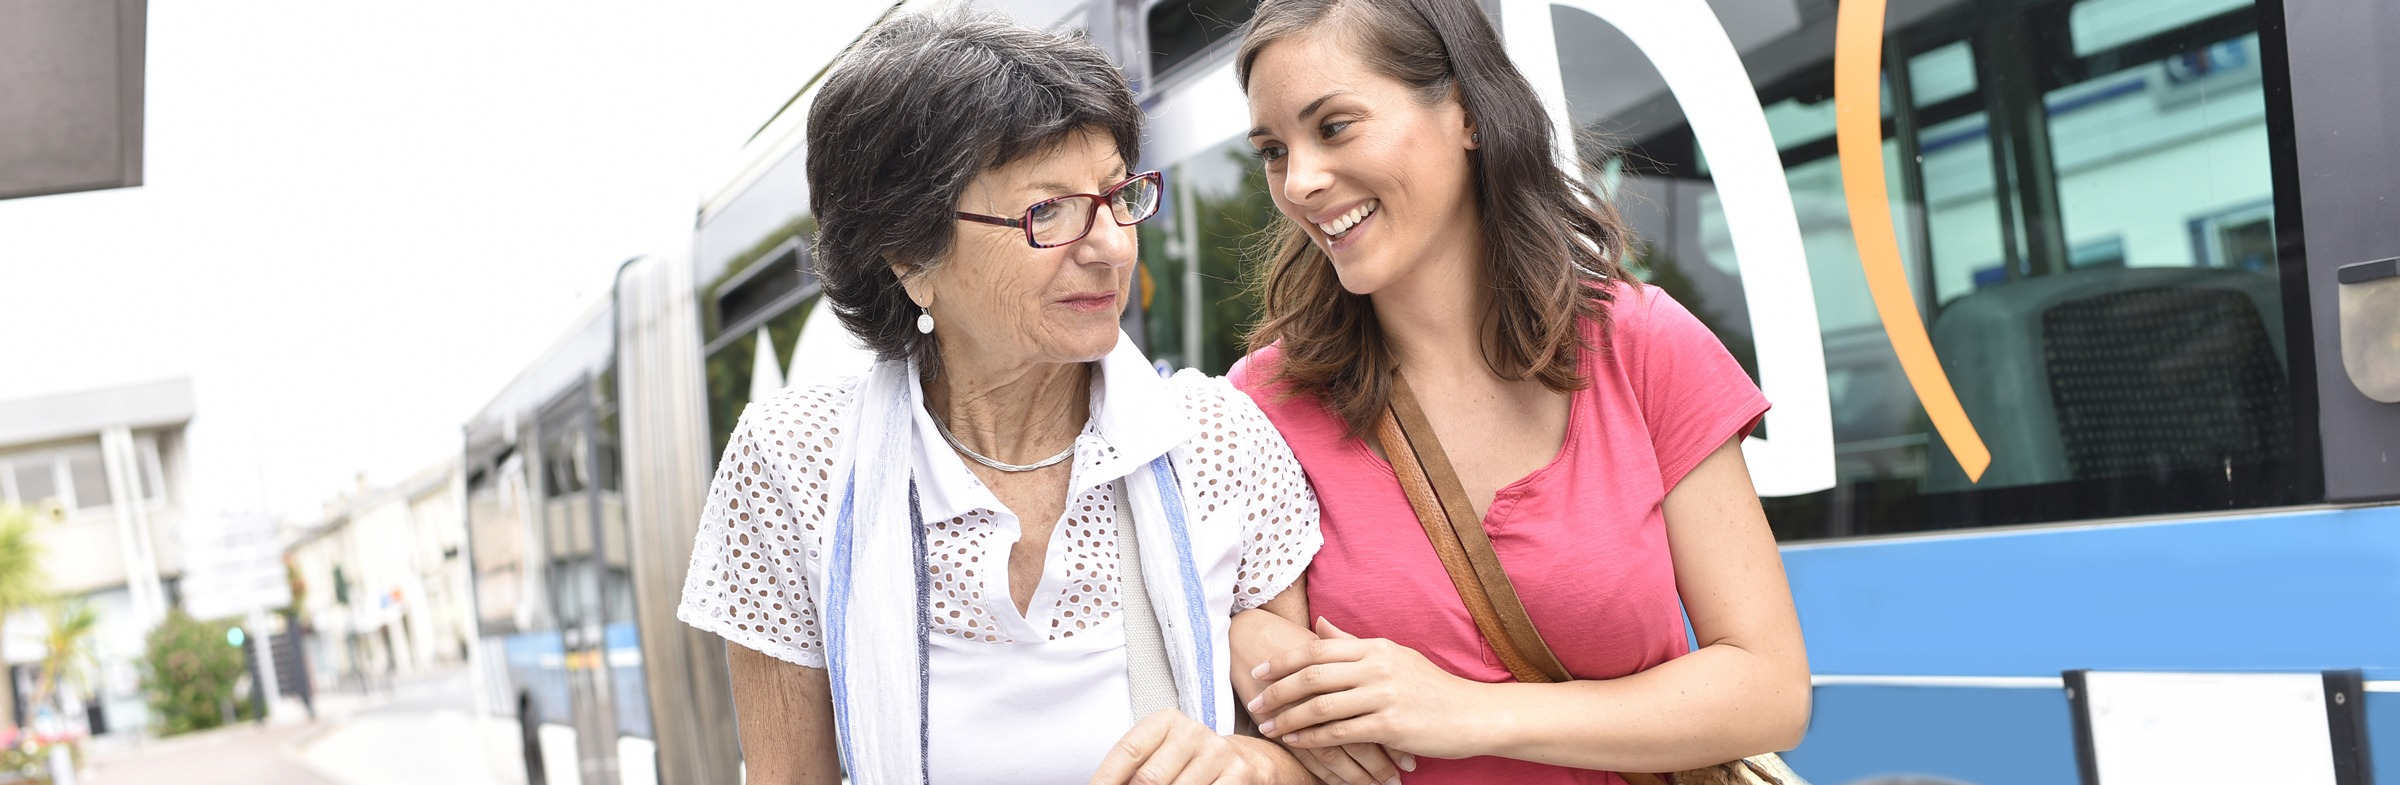 NDIS Disability Support Personalised Programs - Zest Care